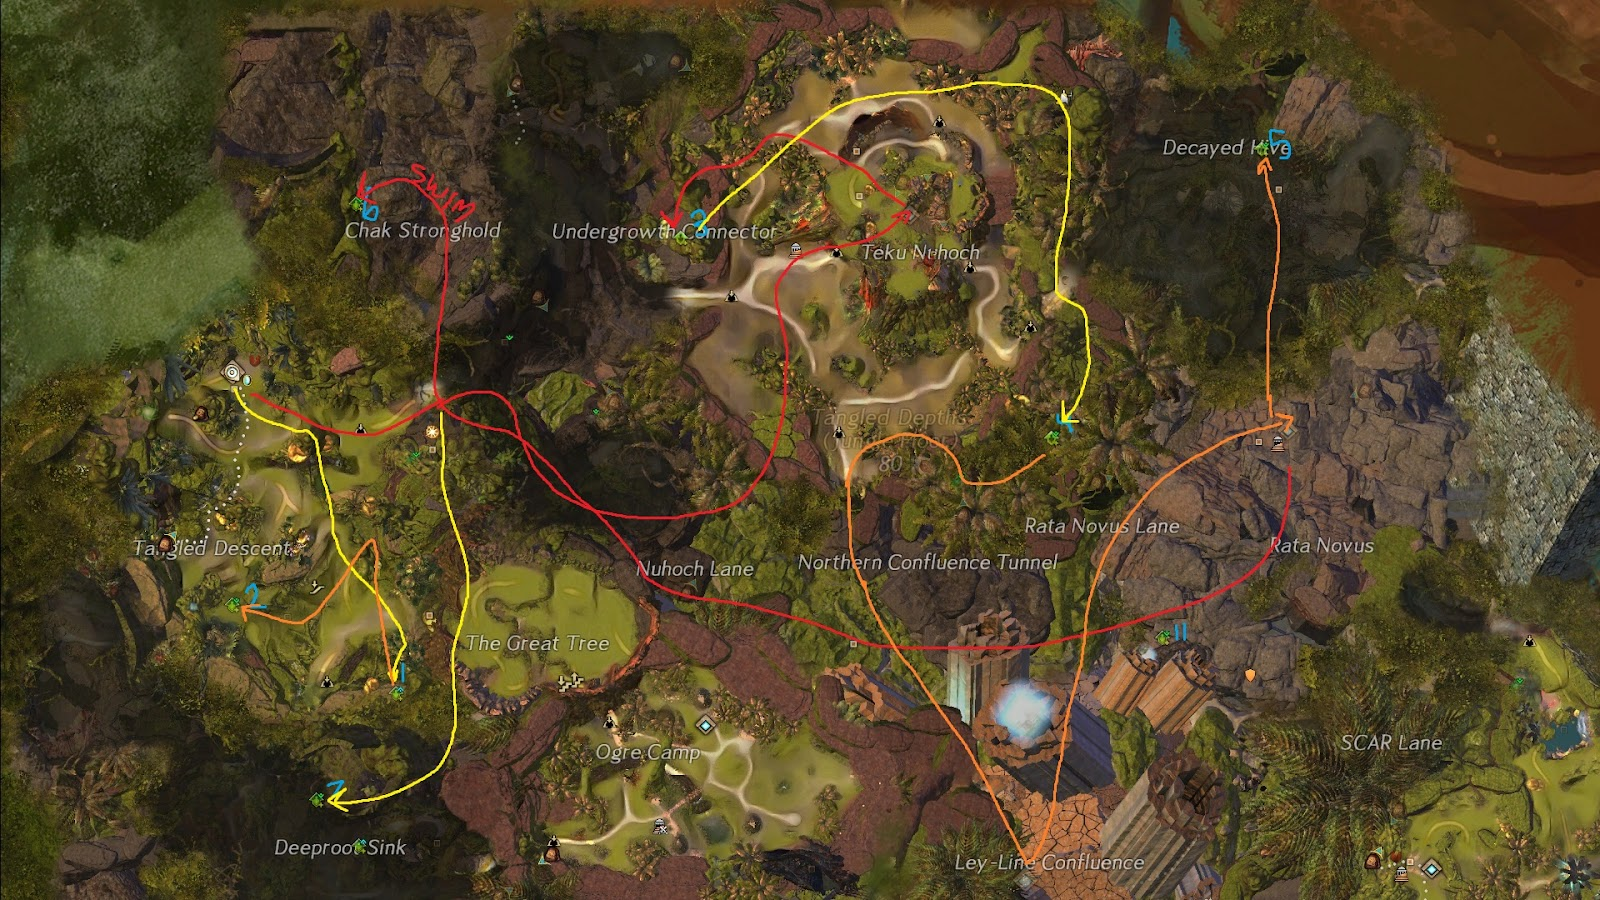 gw2 hot map completion guide